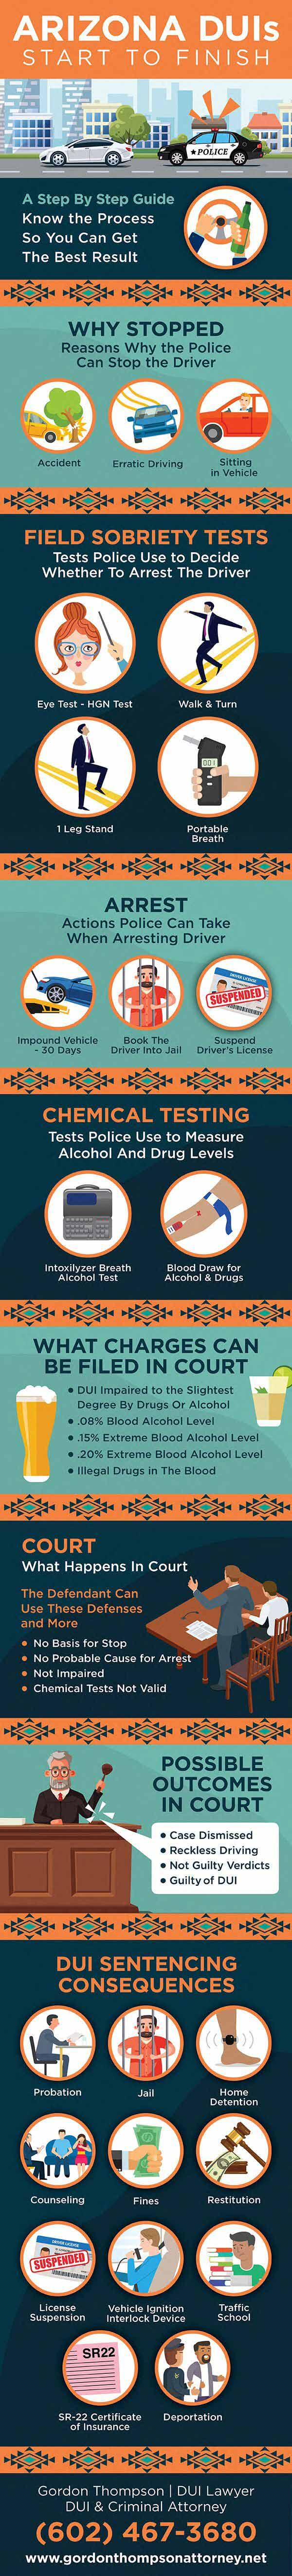 What is a Misdemeanor DUI in Arizona; An informational guide through an Arizona DUI case, step by step with Phoenix, Arizona DUI & Criminal Attorney Gordon Thompson. 1. Why Stopped: Accident, Erratic Driving, Sitting in Vehicle. 2. Field Sobriety Tests: Eye Test, Walk & Turn, 1 <a href=